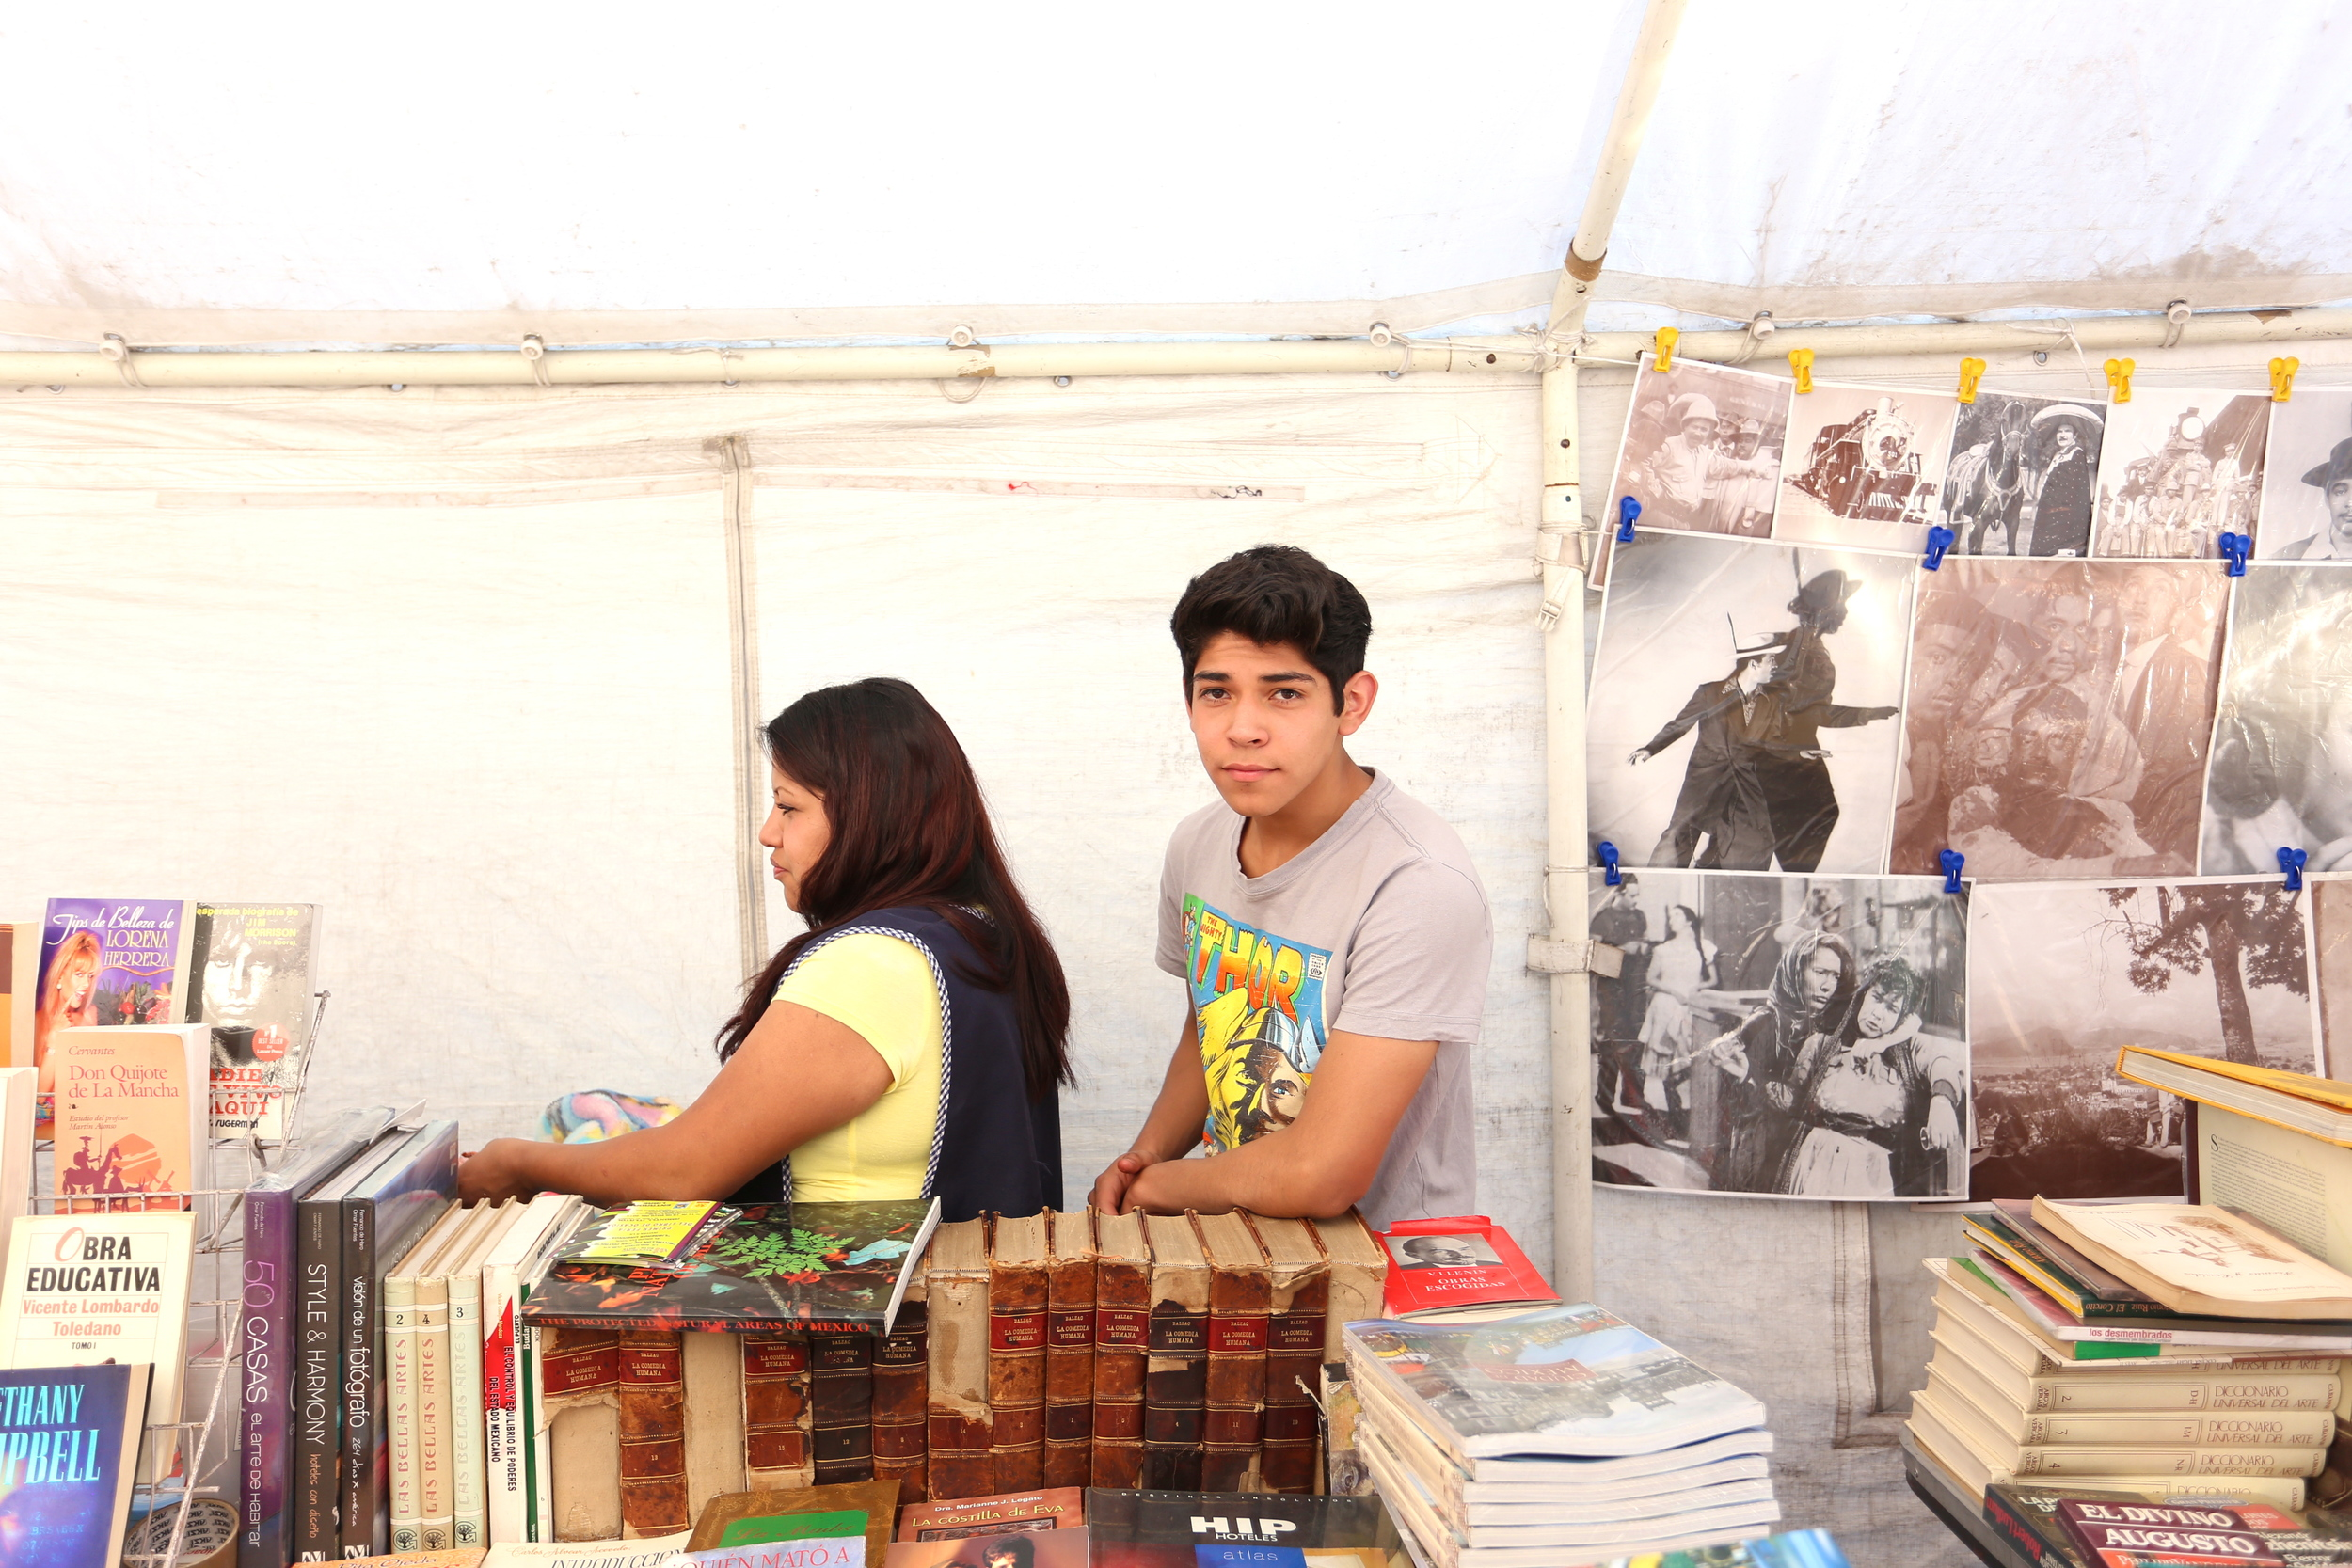 There were endless rows of used book vendors, as well as bookstores lining several streets.